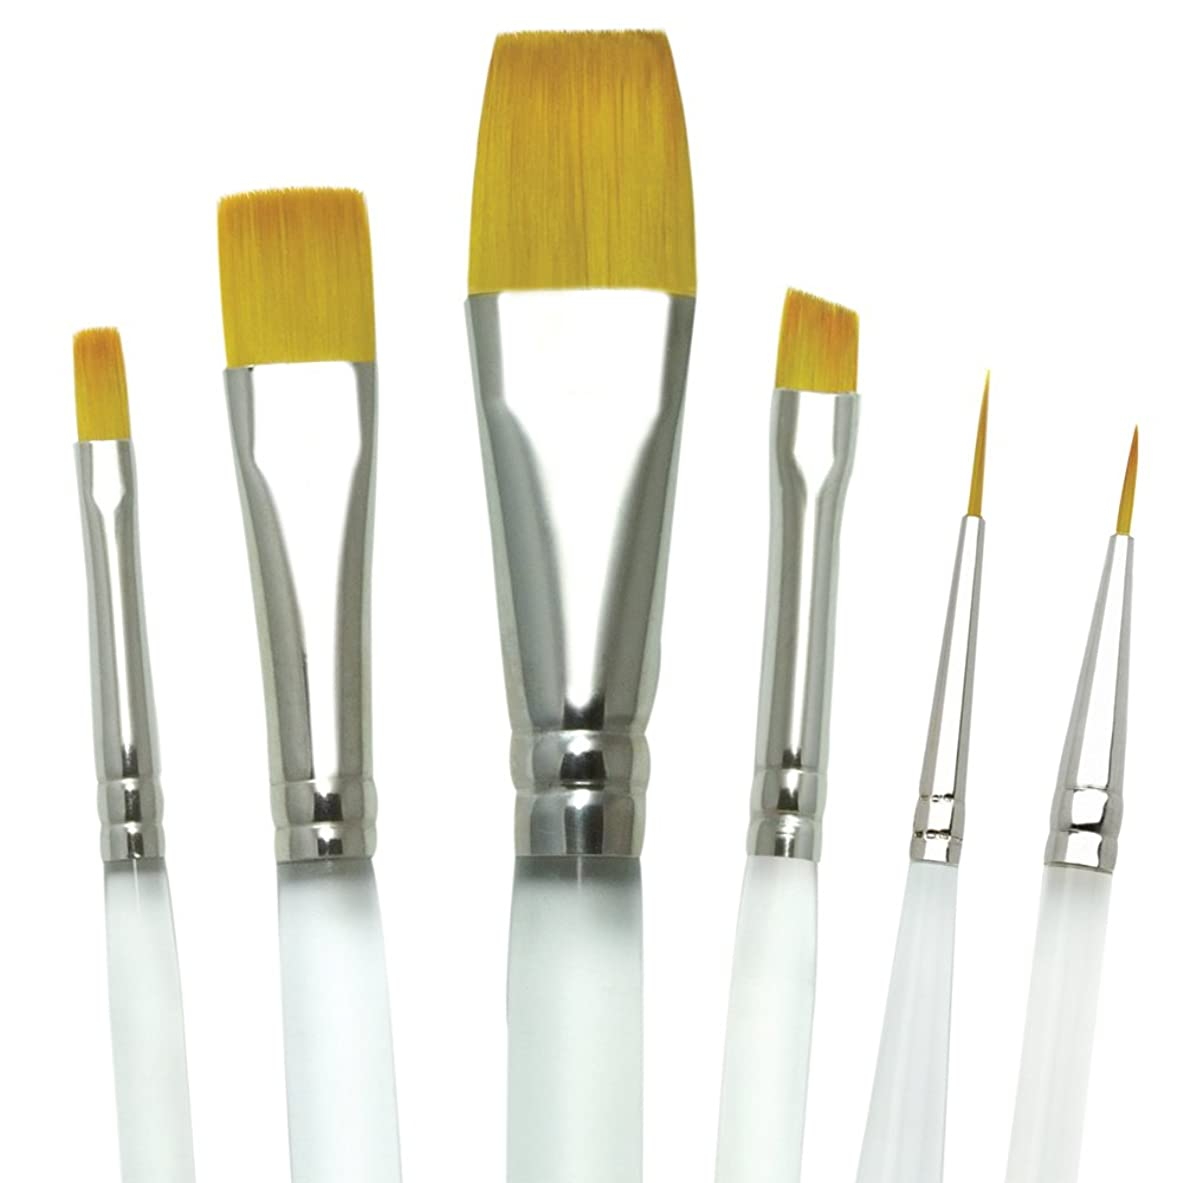 Aqualon Royal and Langnickel Short Handle Paint Brush Set, Decorative Painting, 6-Piece